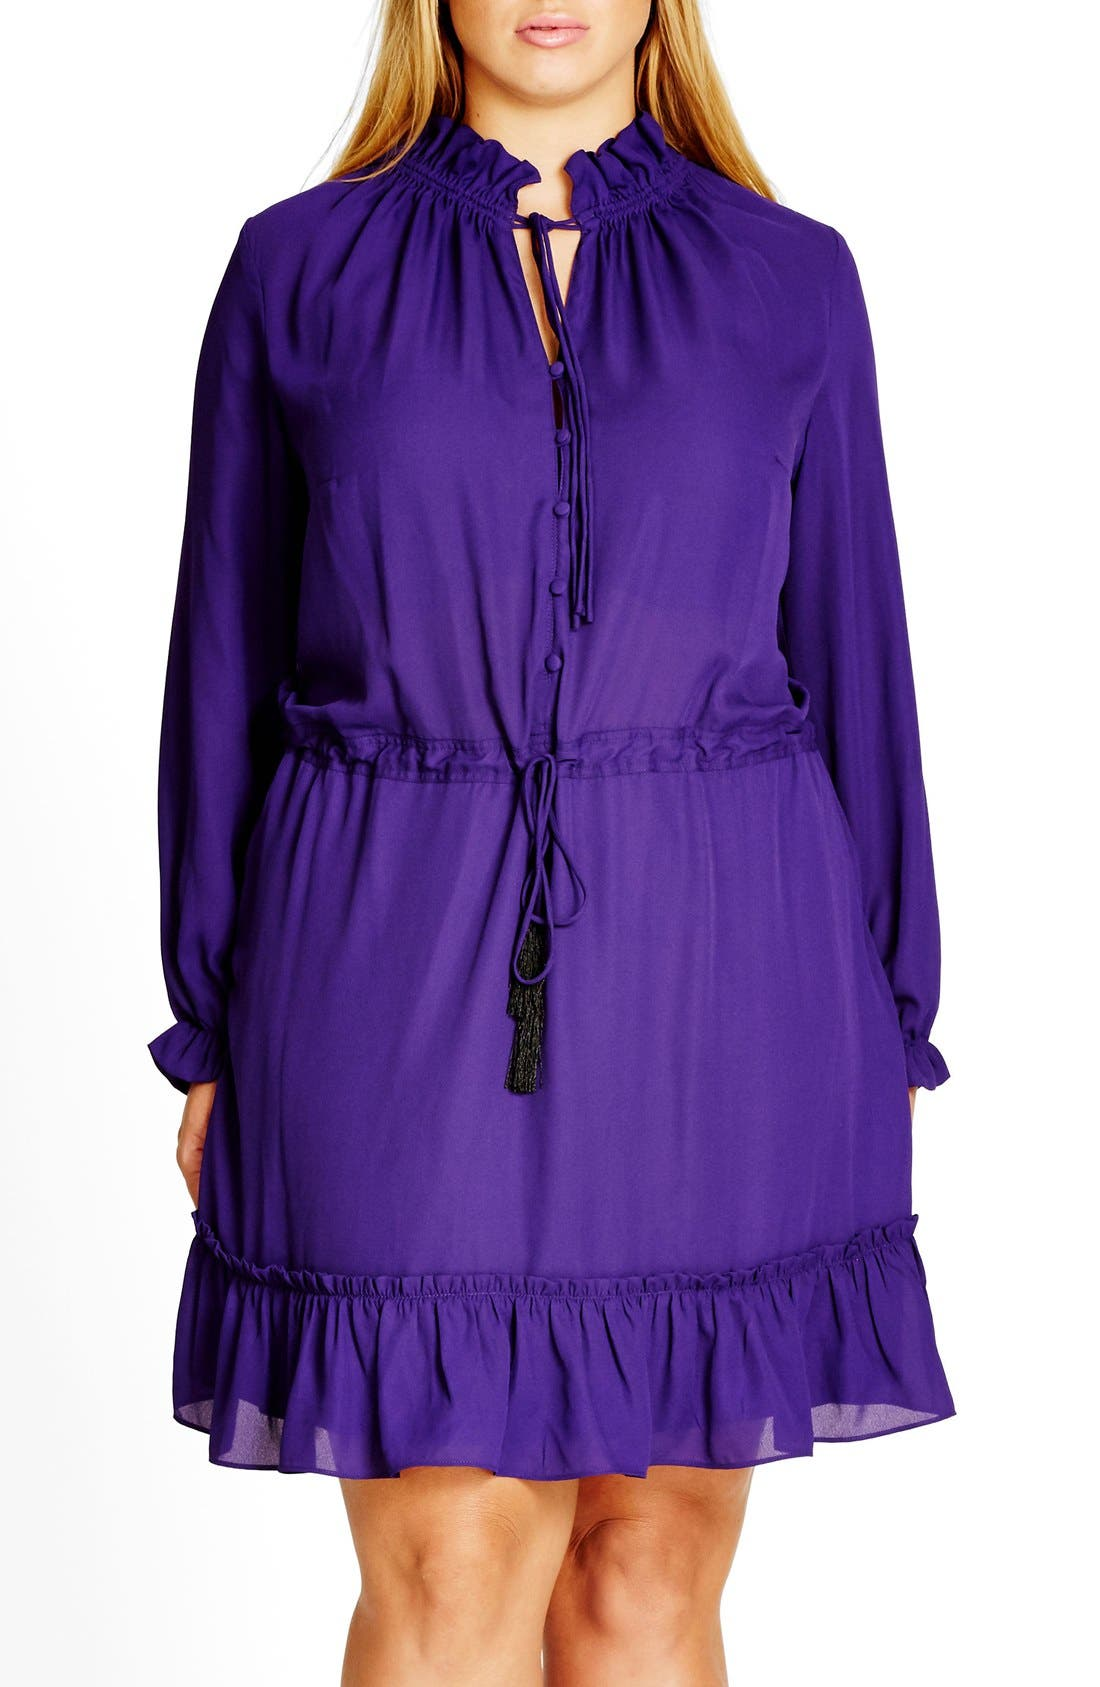 CITY CHIC 'Miss Stevie' Ruffle Drawstring Tunic